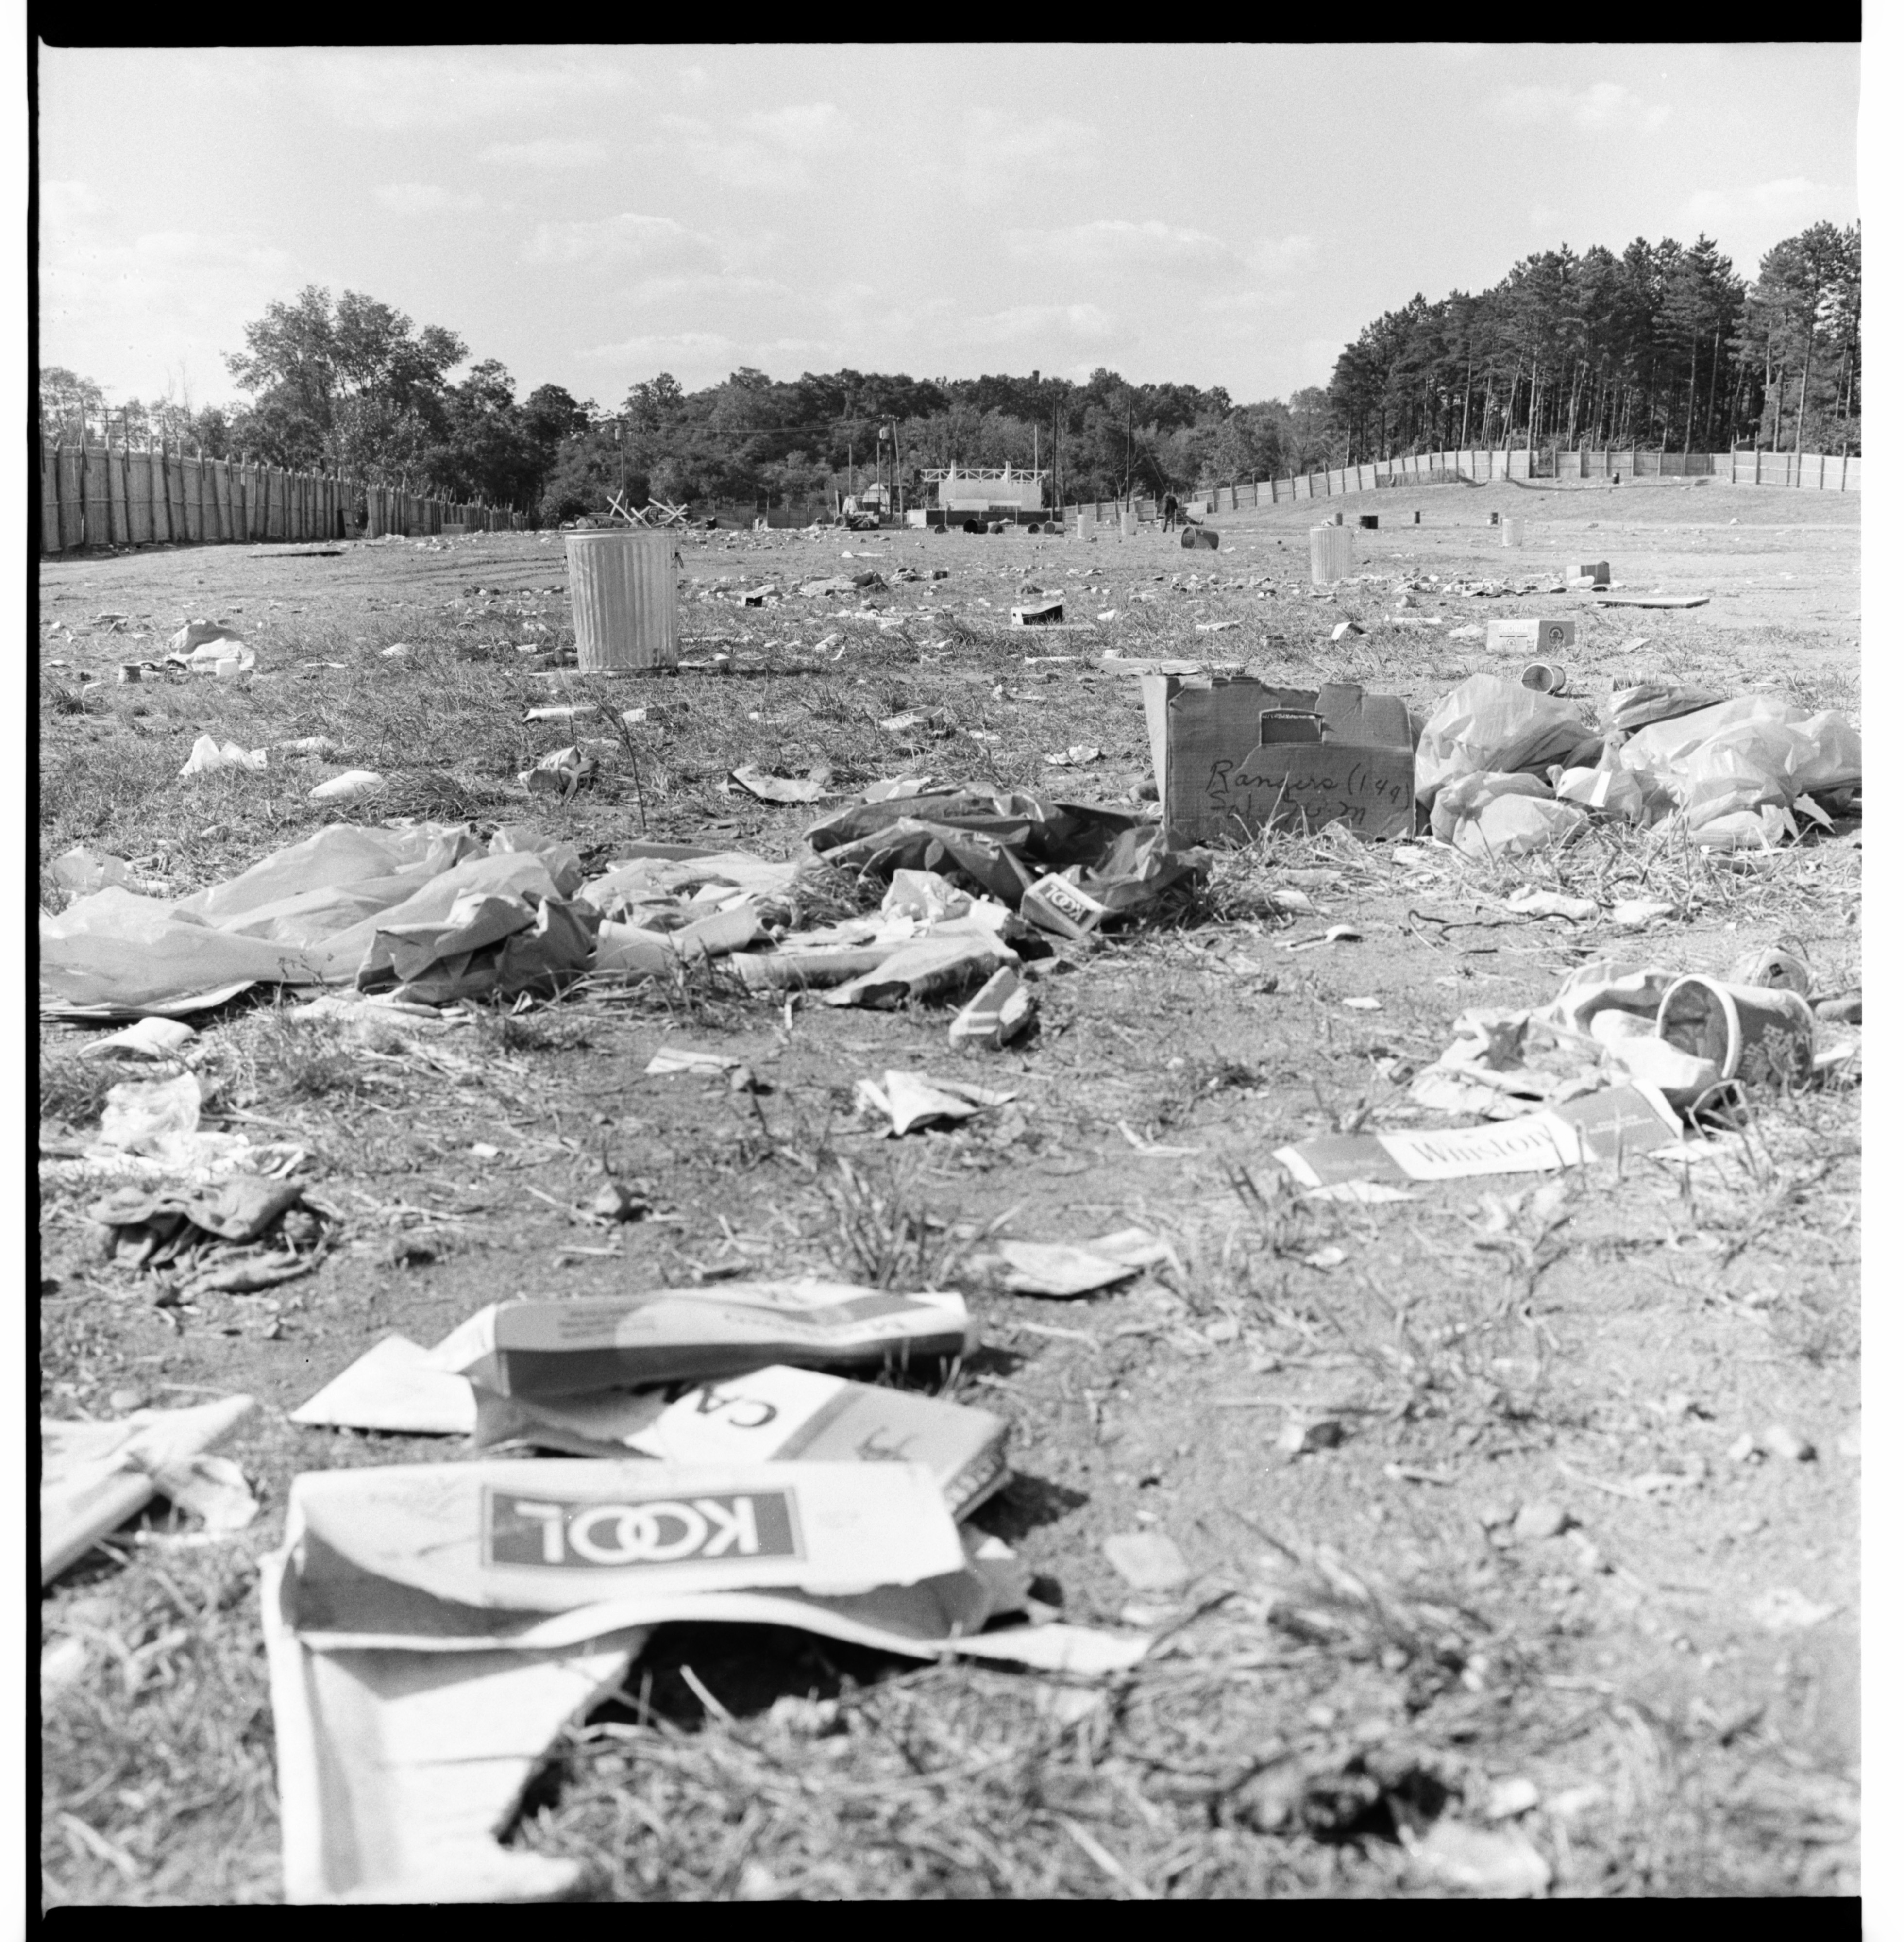 Trashed Field After Blues Festival image